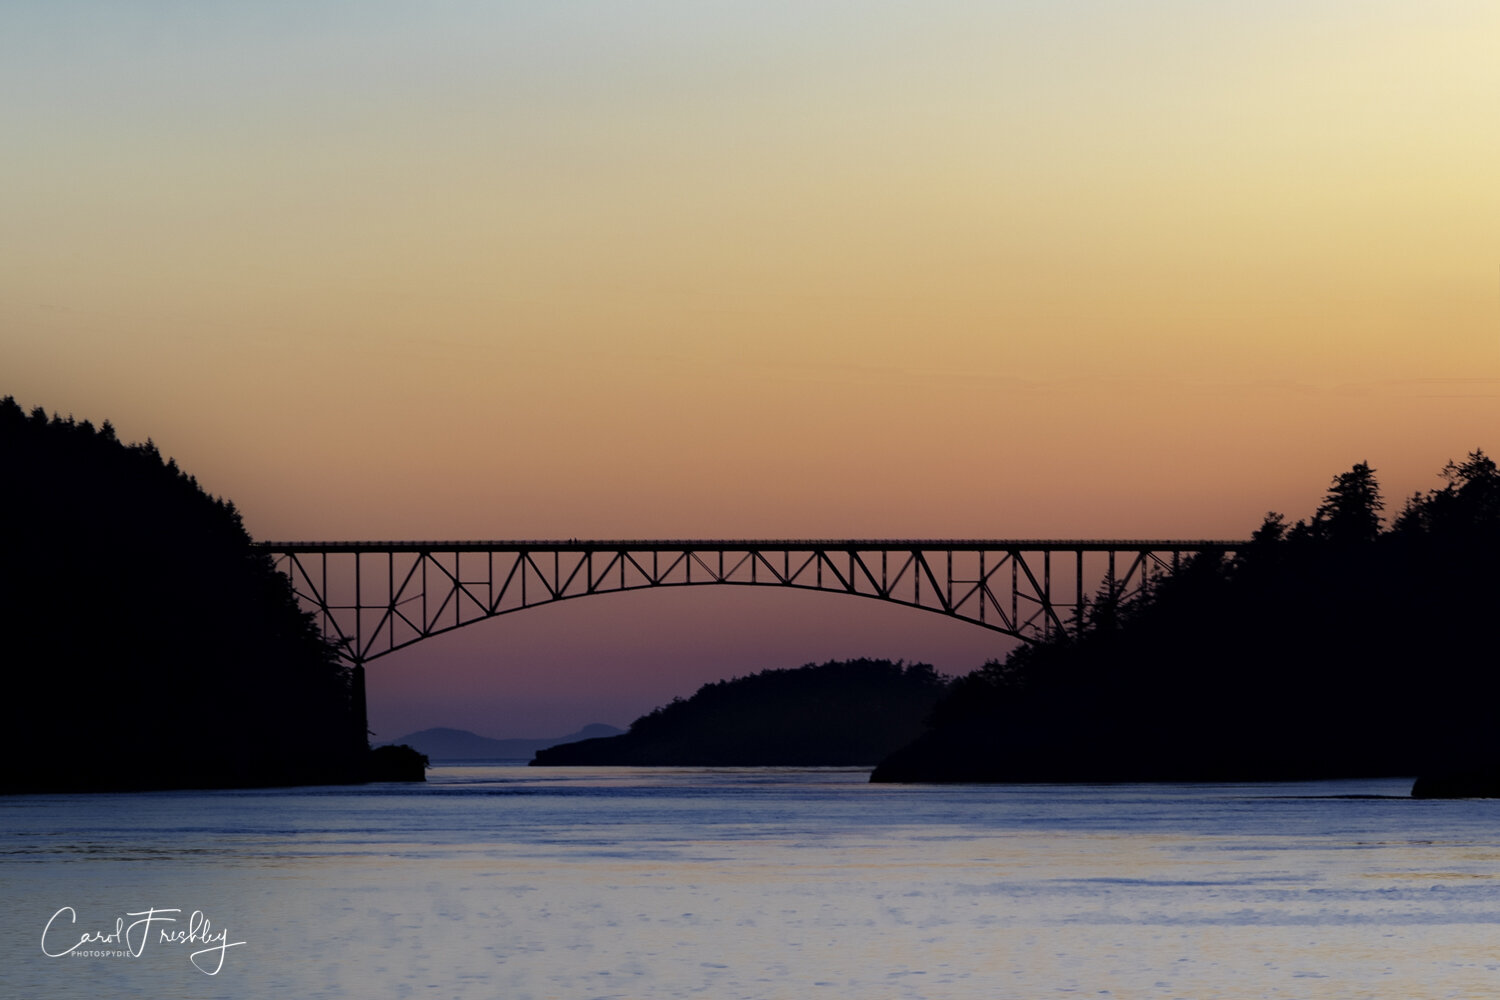 Deception Pass at sunset.